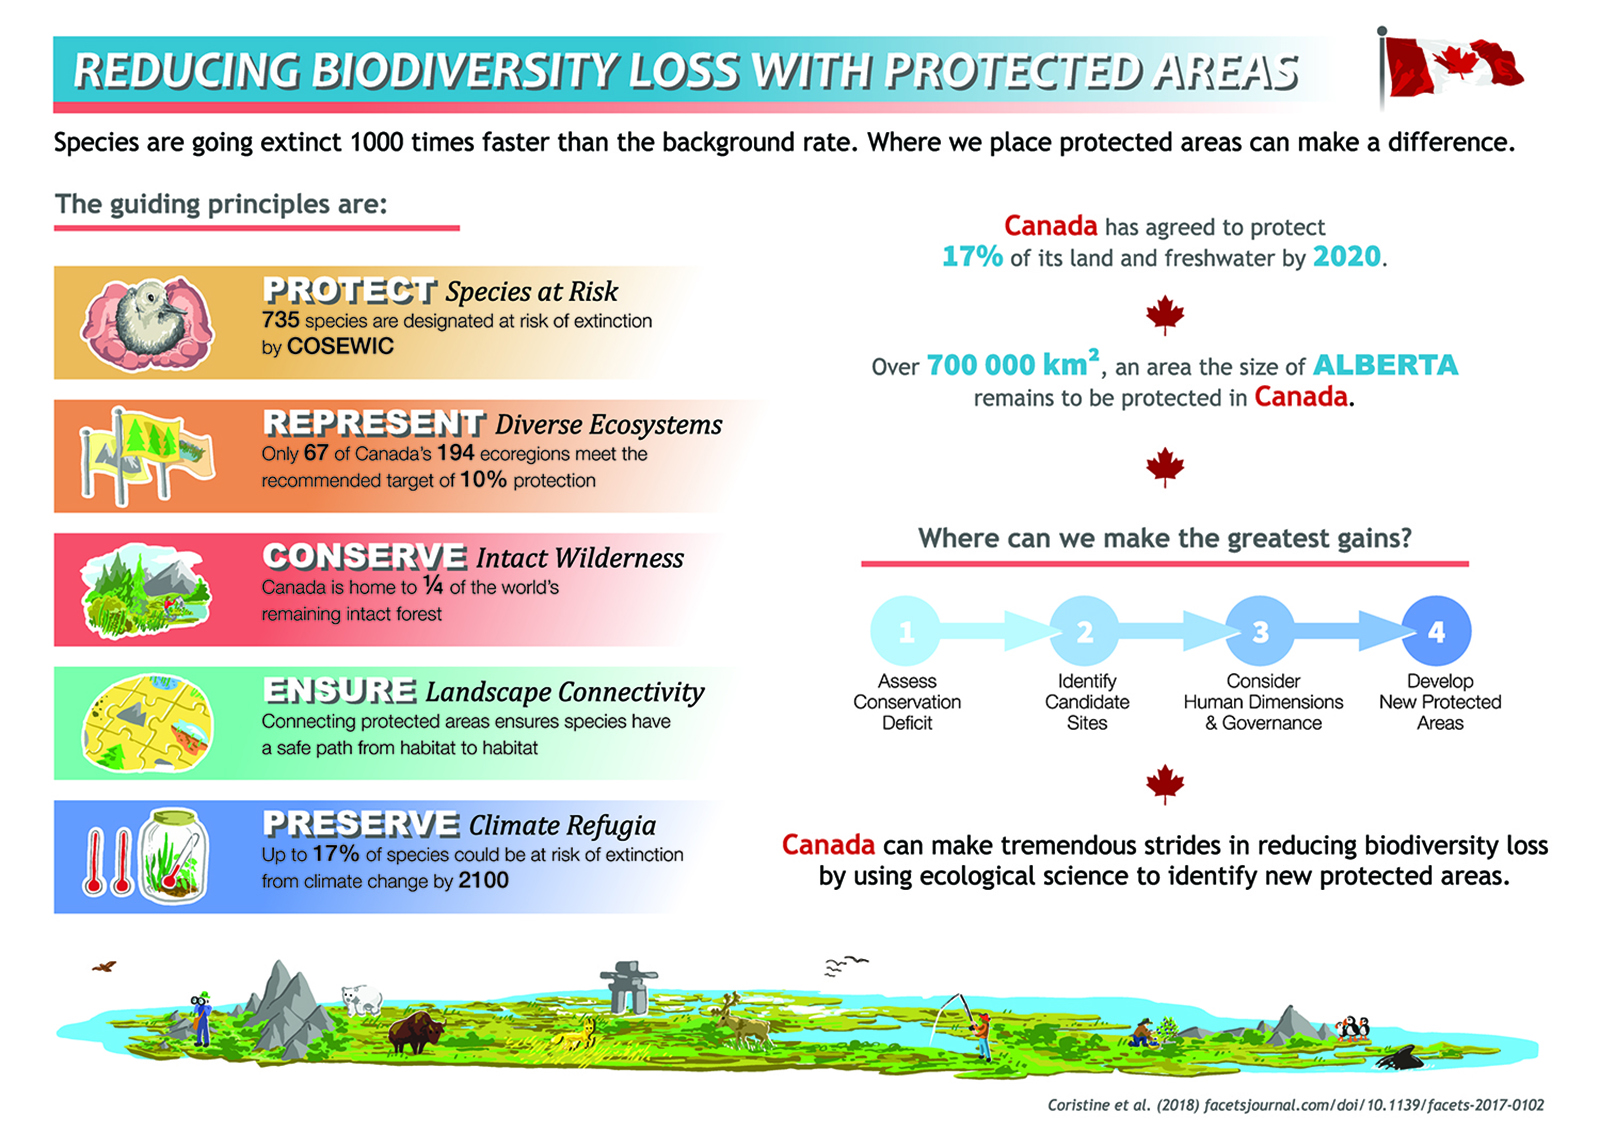 Reducing biodiversity loss with protected areas